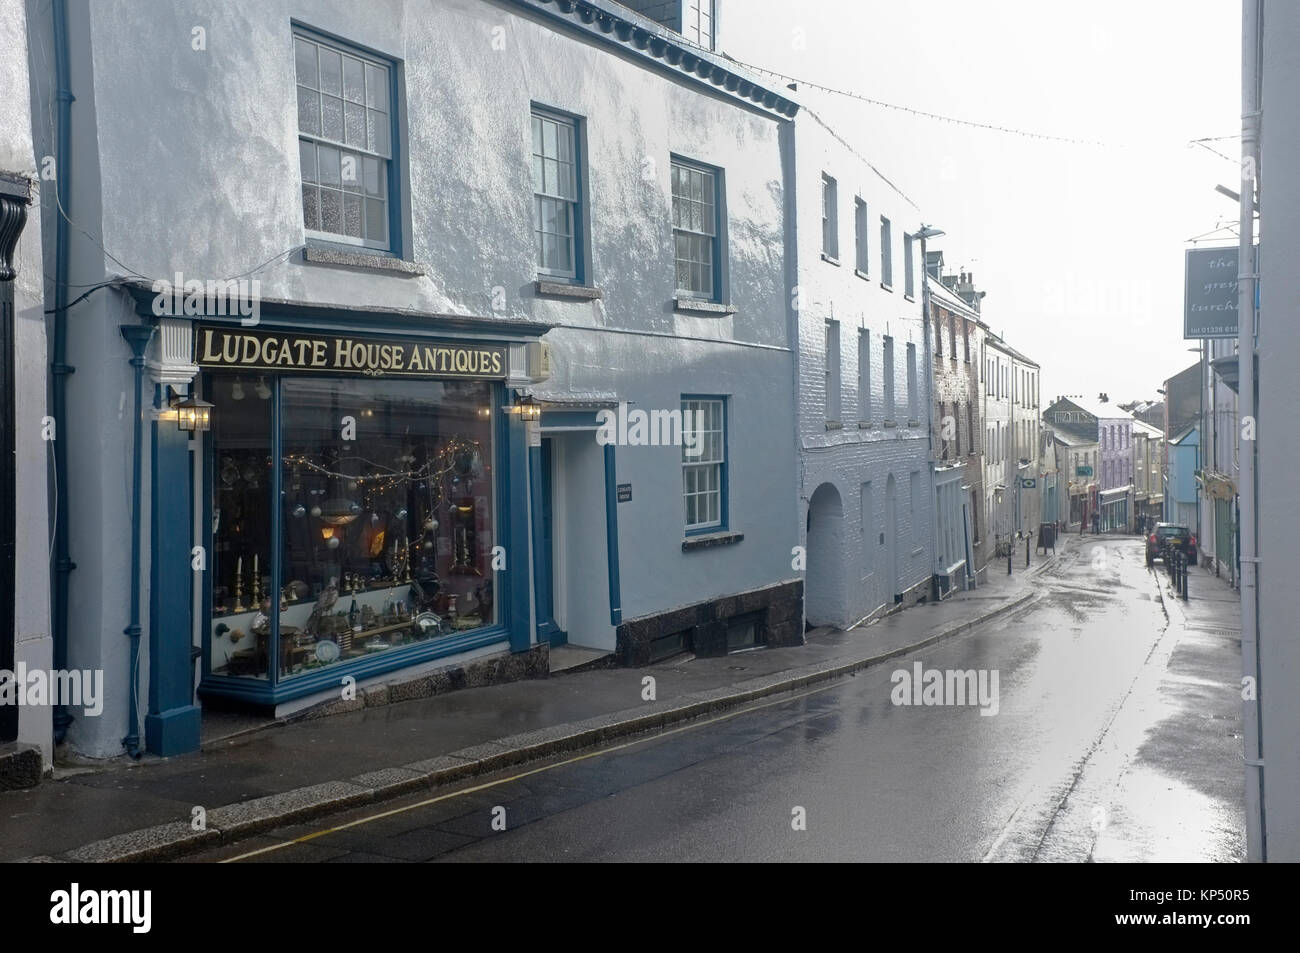 Wet Falmouth, empty street. - Stock Image